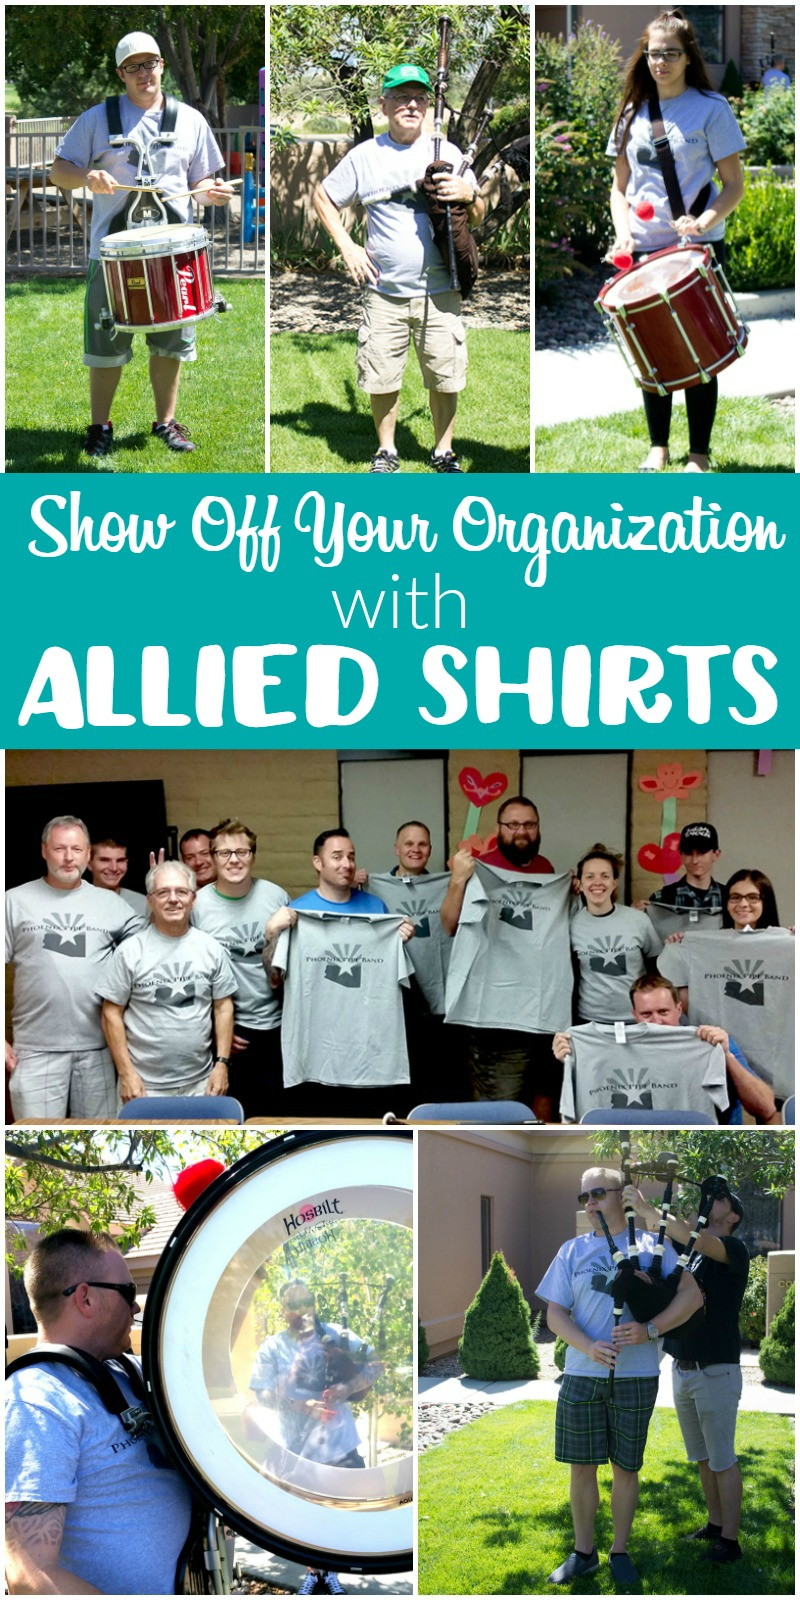 Show Off Your Organization with Allied Shirts! | White Lights on Wenesday #ad